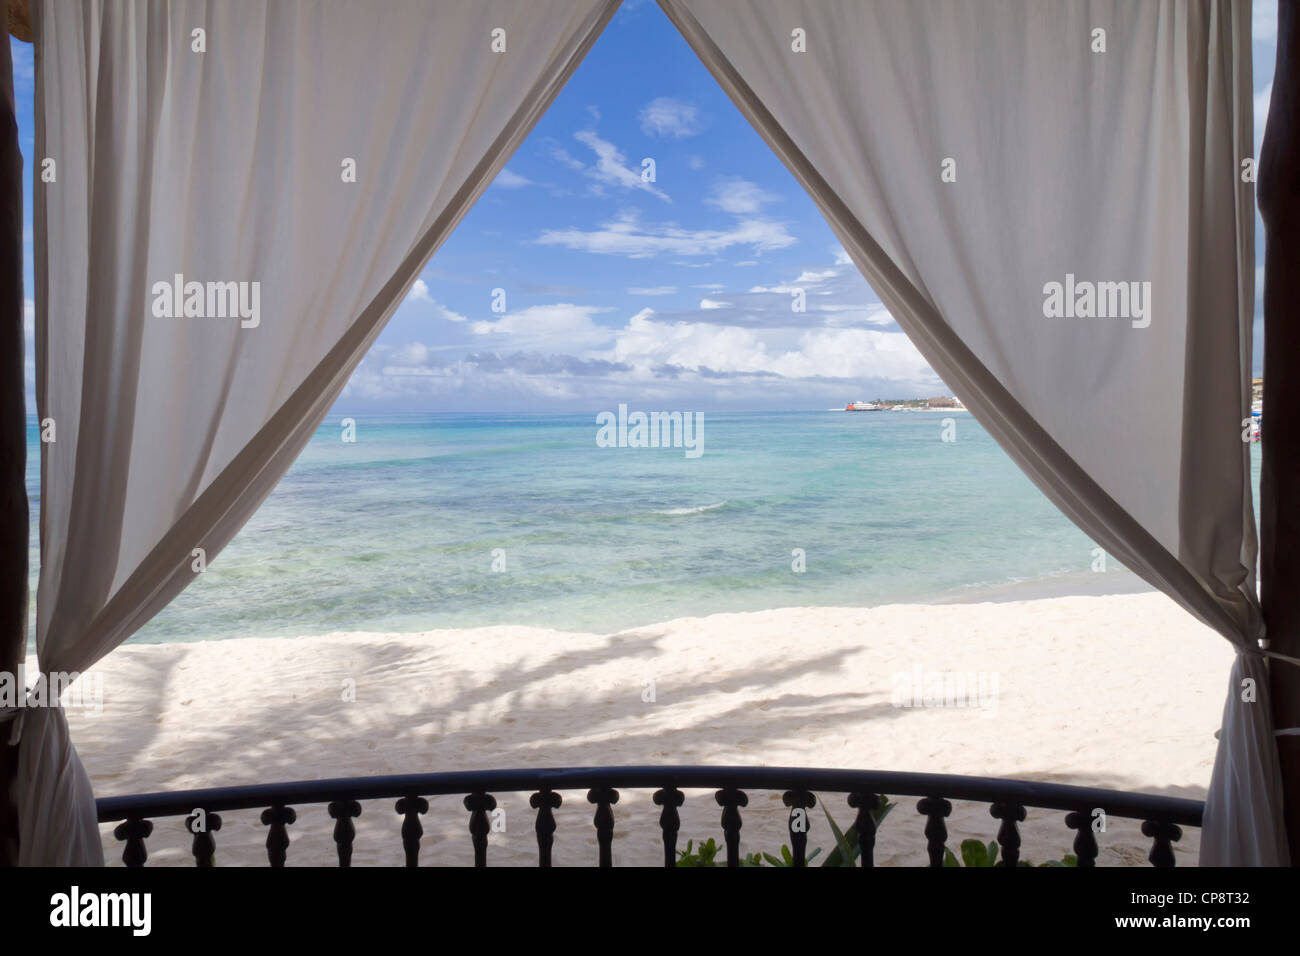 A framed view of the beach and tropical ocean - Stock Image